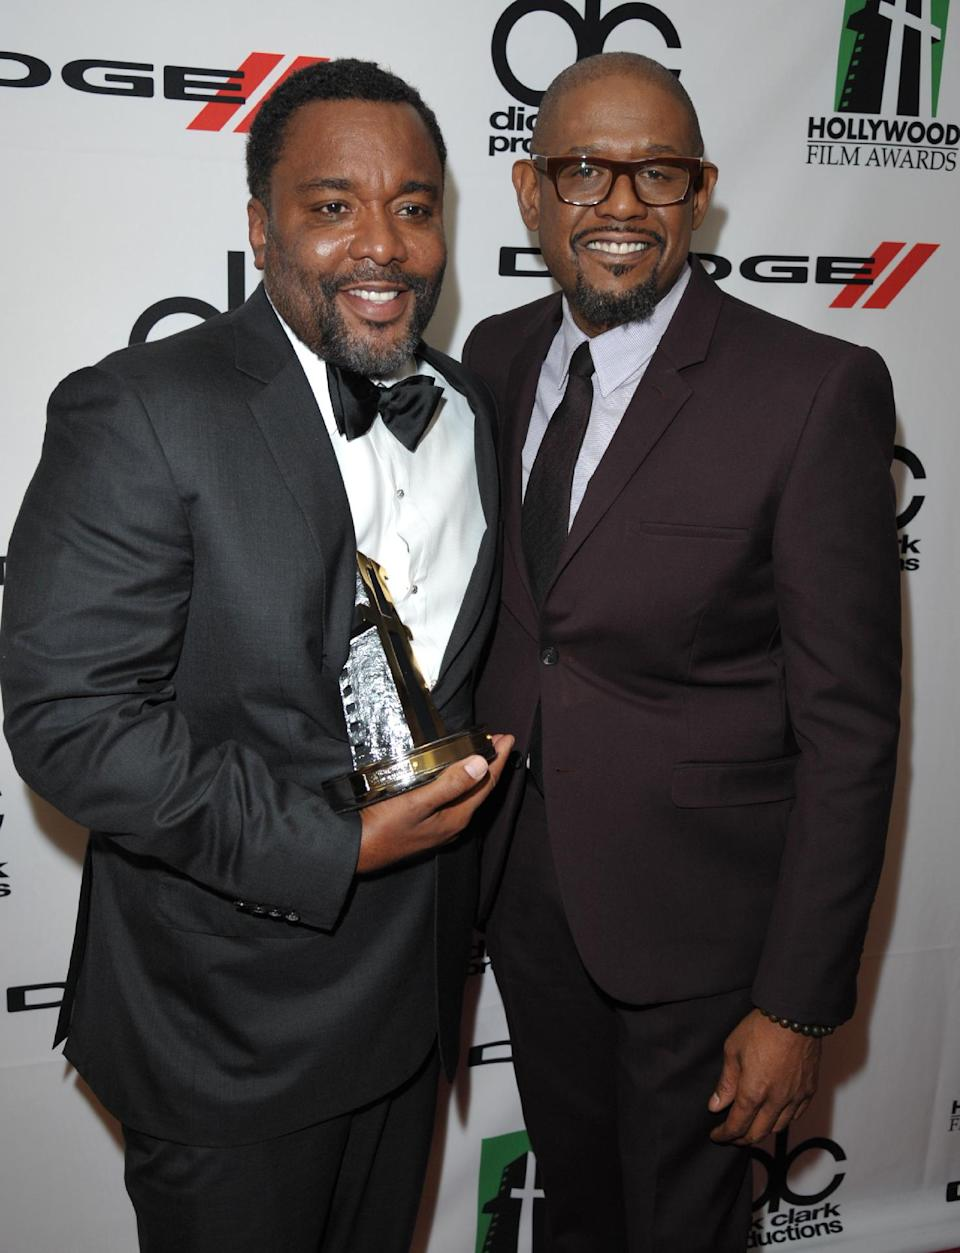 Lee Daniels, winner of the Hollywood director award, left, and Forest Whitaker pose backstage at the 17th Annual Hollywood Film Awards Gala at the Beverly Hilton Hotel on Monday, Oct. 21, 2013, in Beverly Hills, Calif. (Photo by John Shearer/Invision/AP)